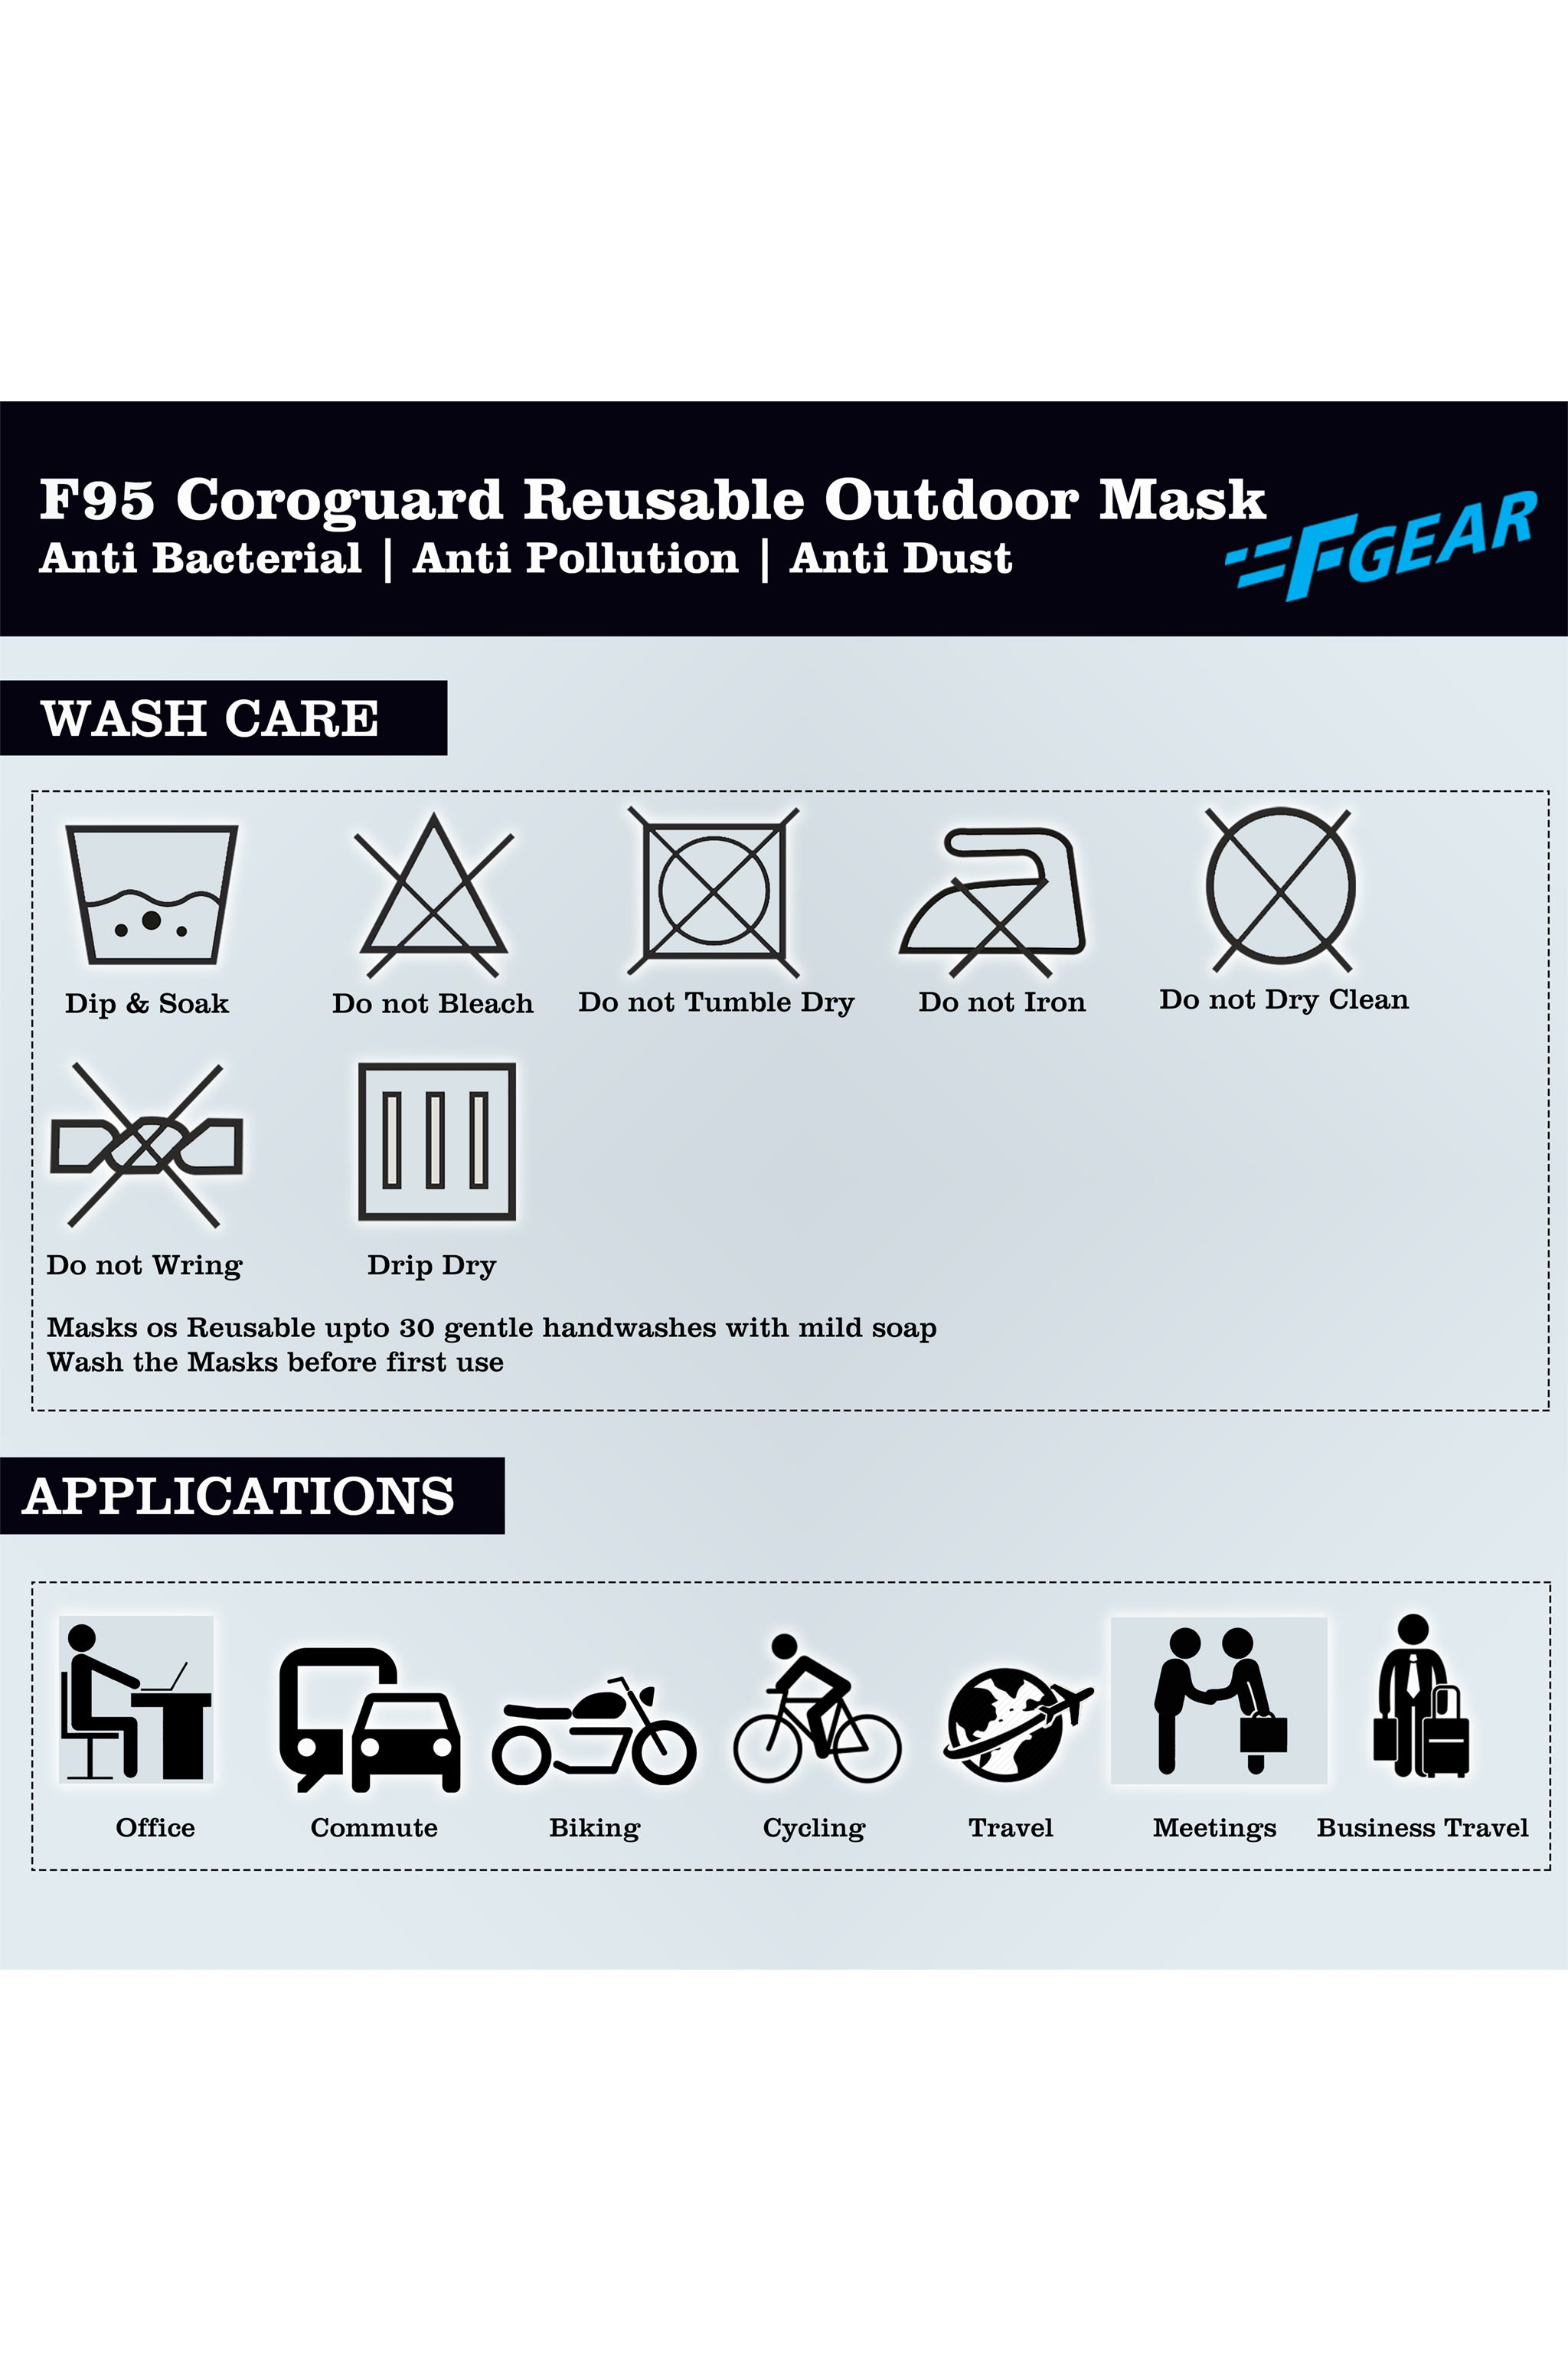 F Gear Coroguard F95 Mask Black-Pavement-Wet Weather-N blue 7 layer ISO CE SITRA lab certified >95% Bacteria Filtration PACK-4